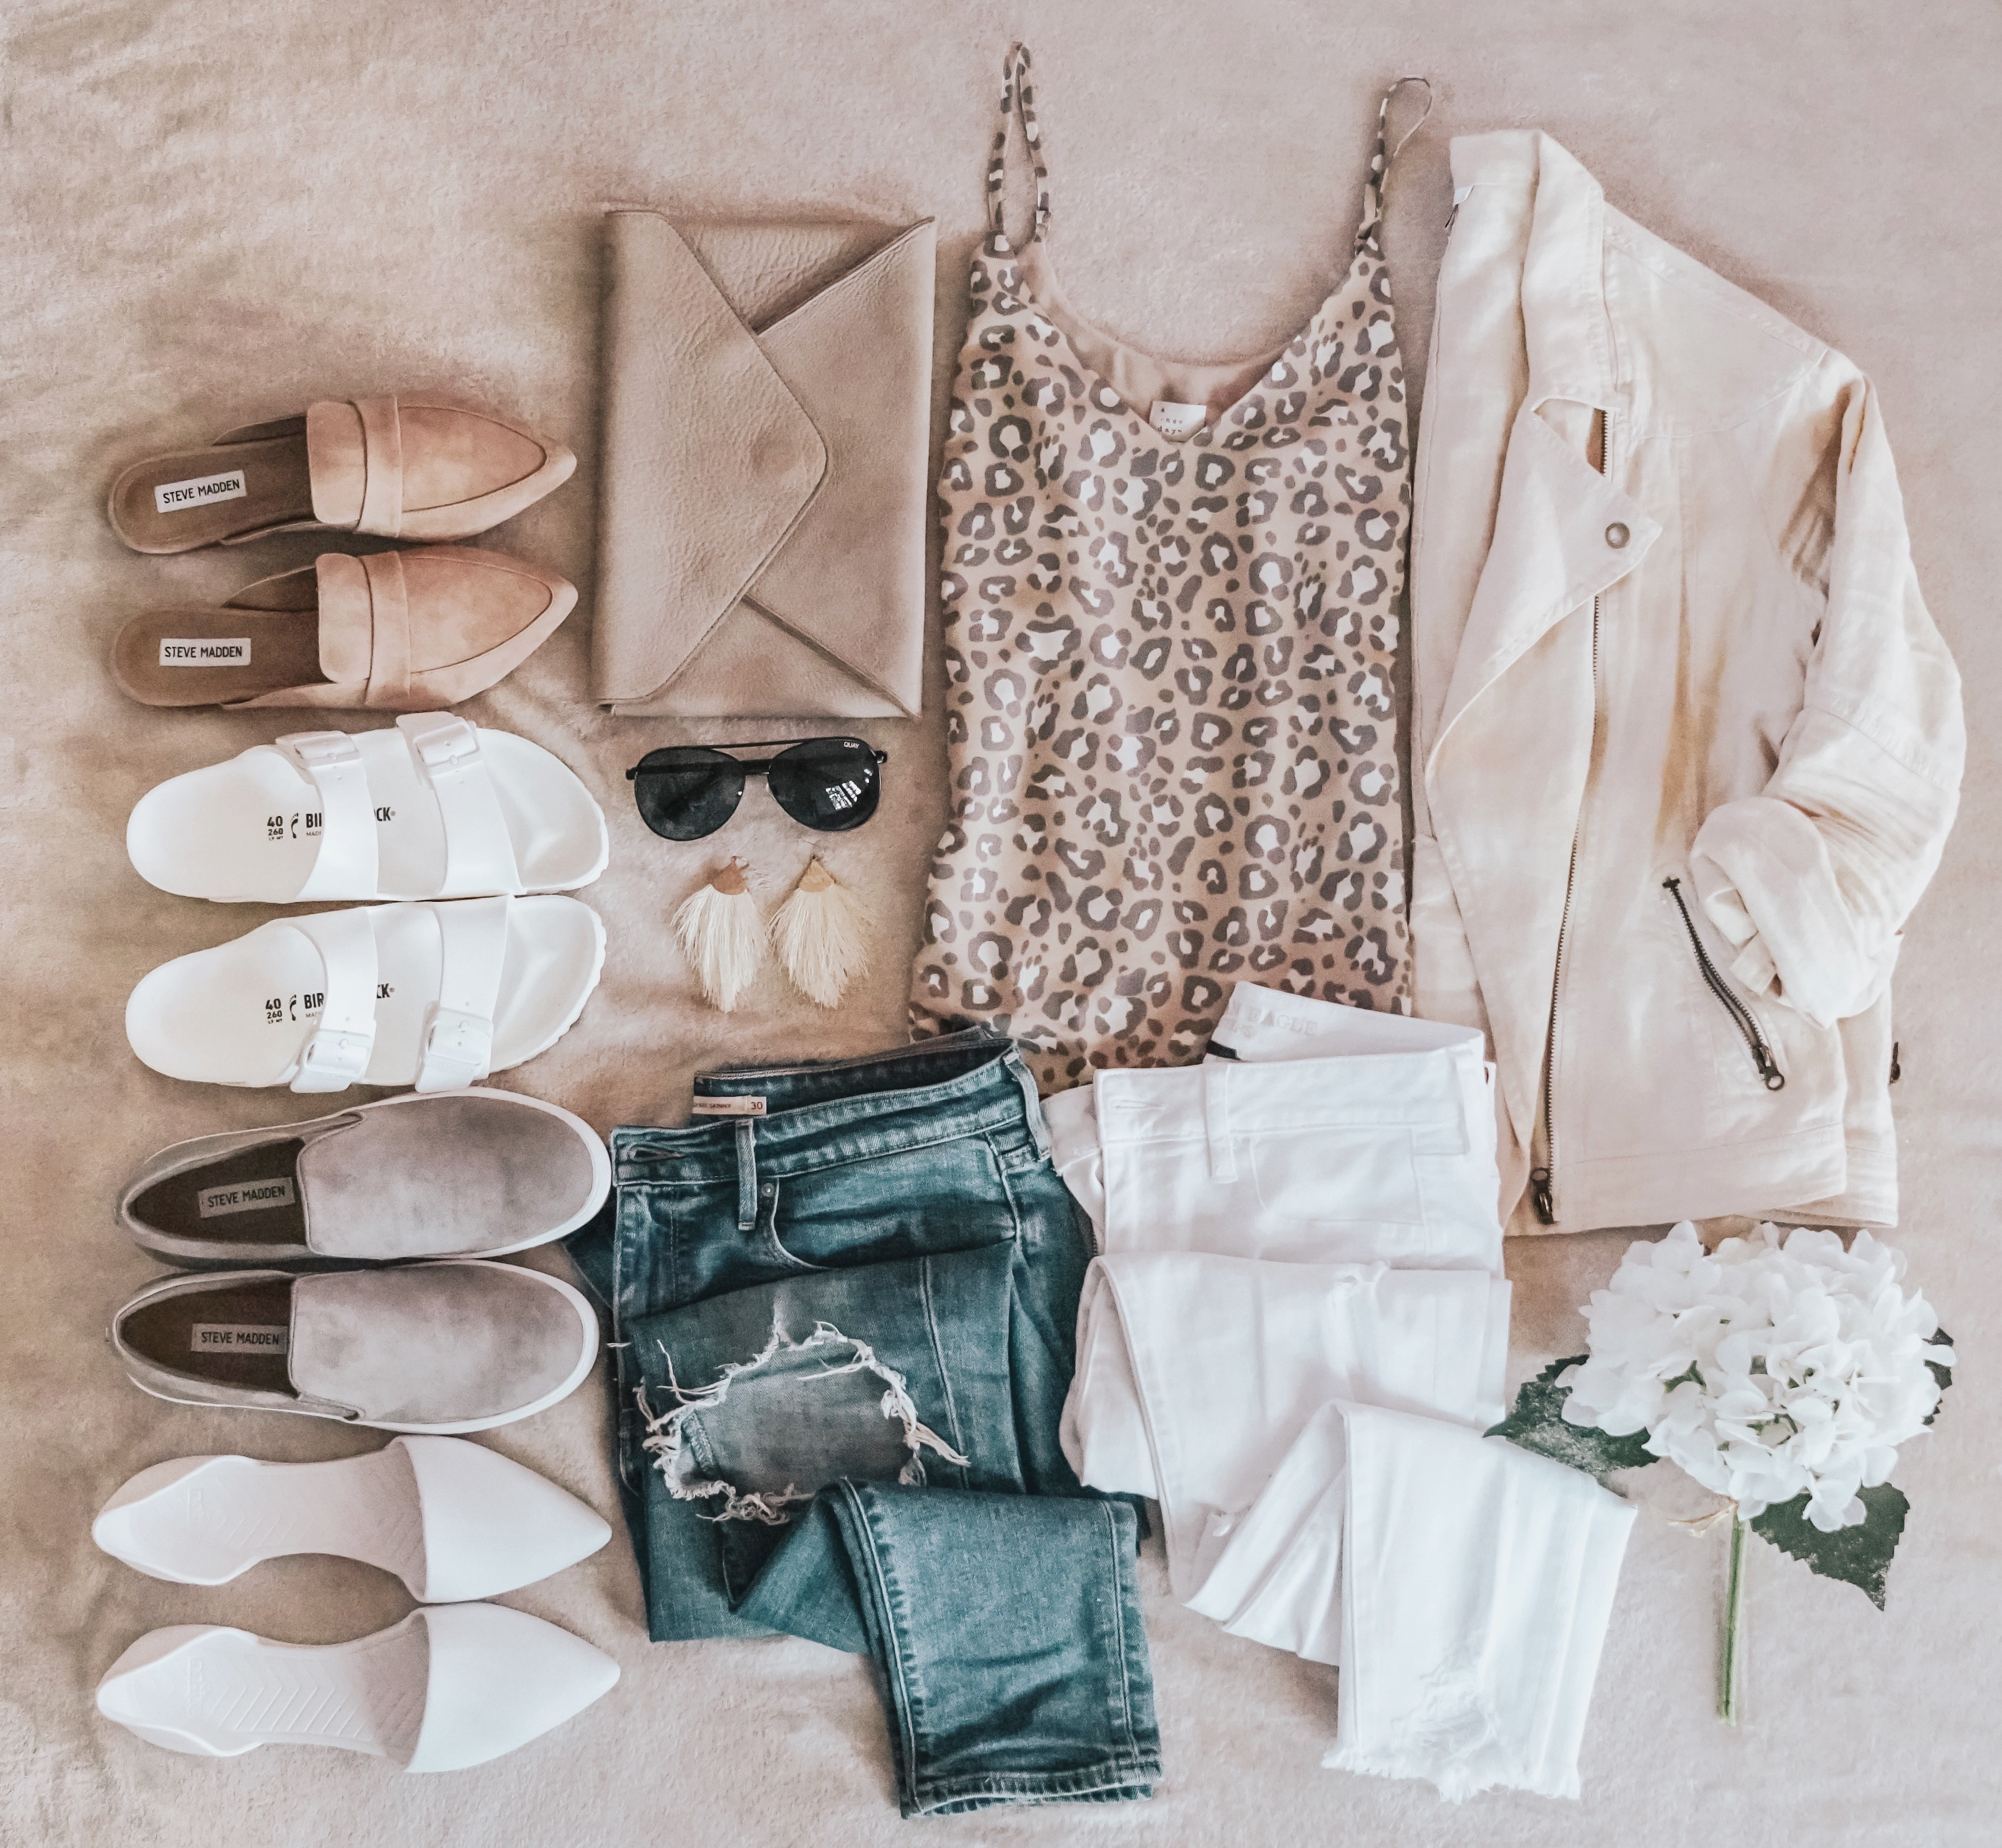 Flatlay featuring leopard print camisole, jeans, moto jacket, loafers, birkenstocks, sunglasses and clutch/how to style